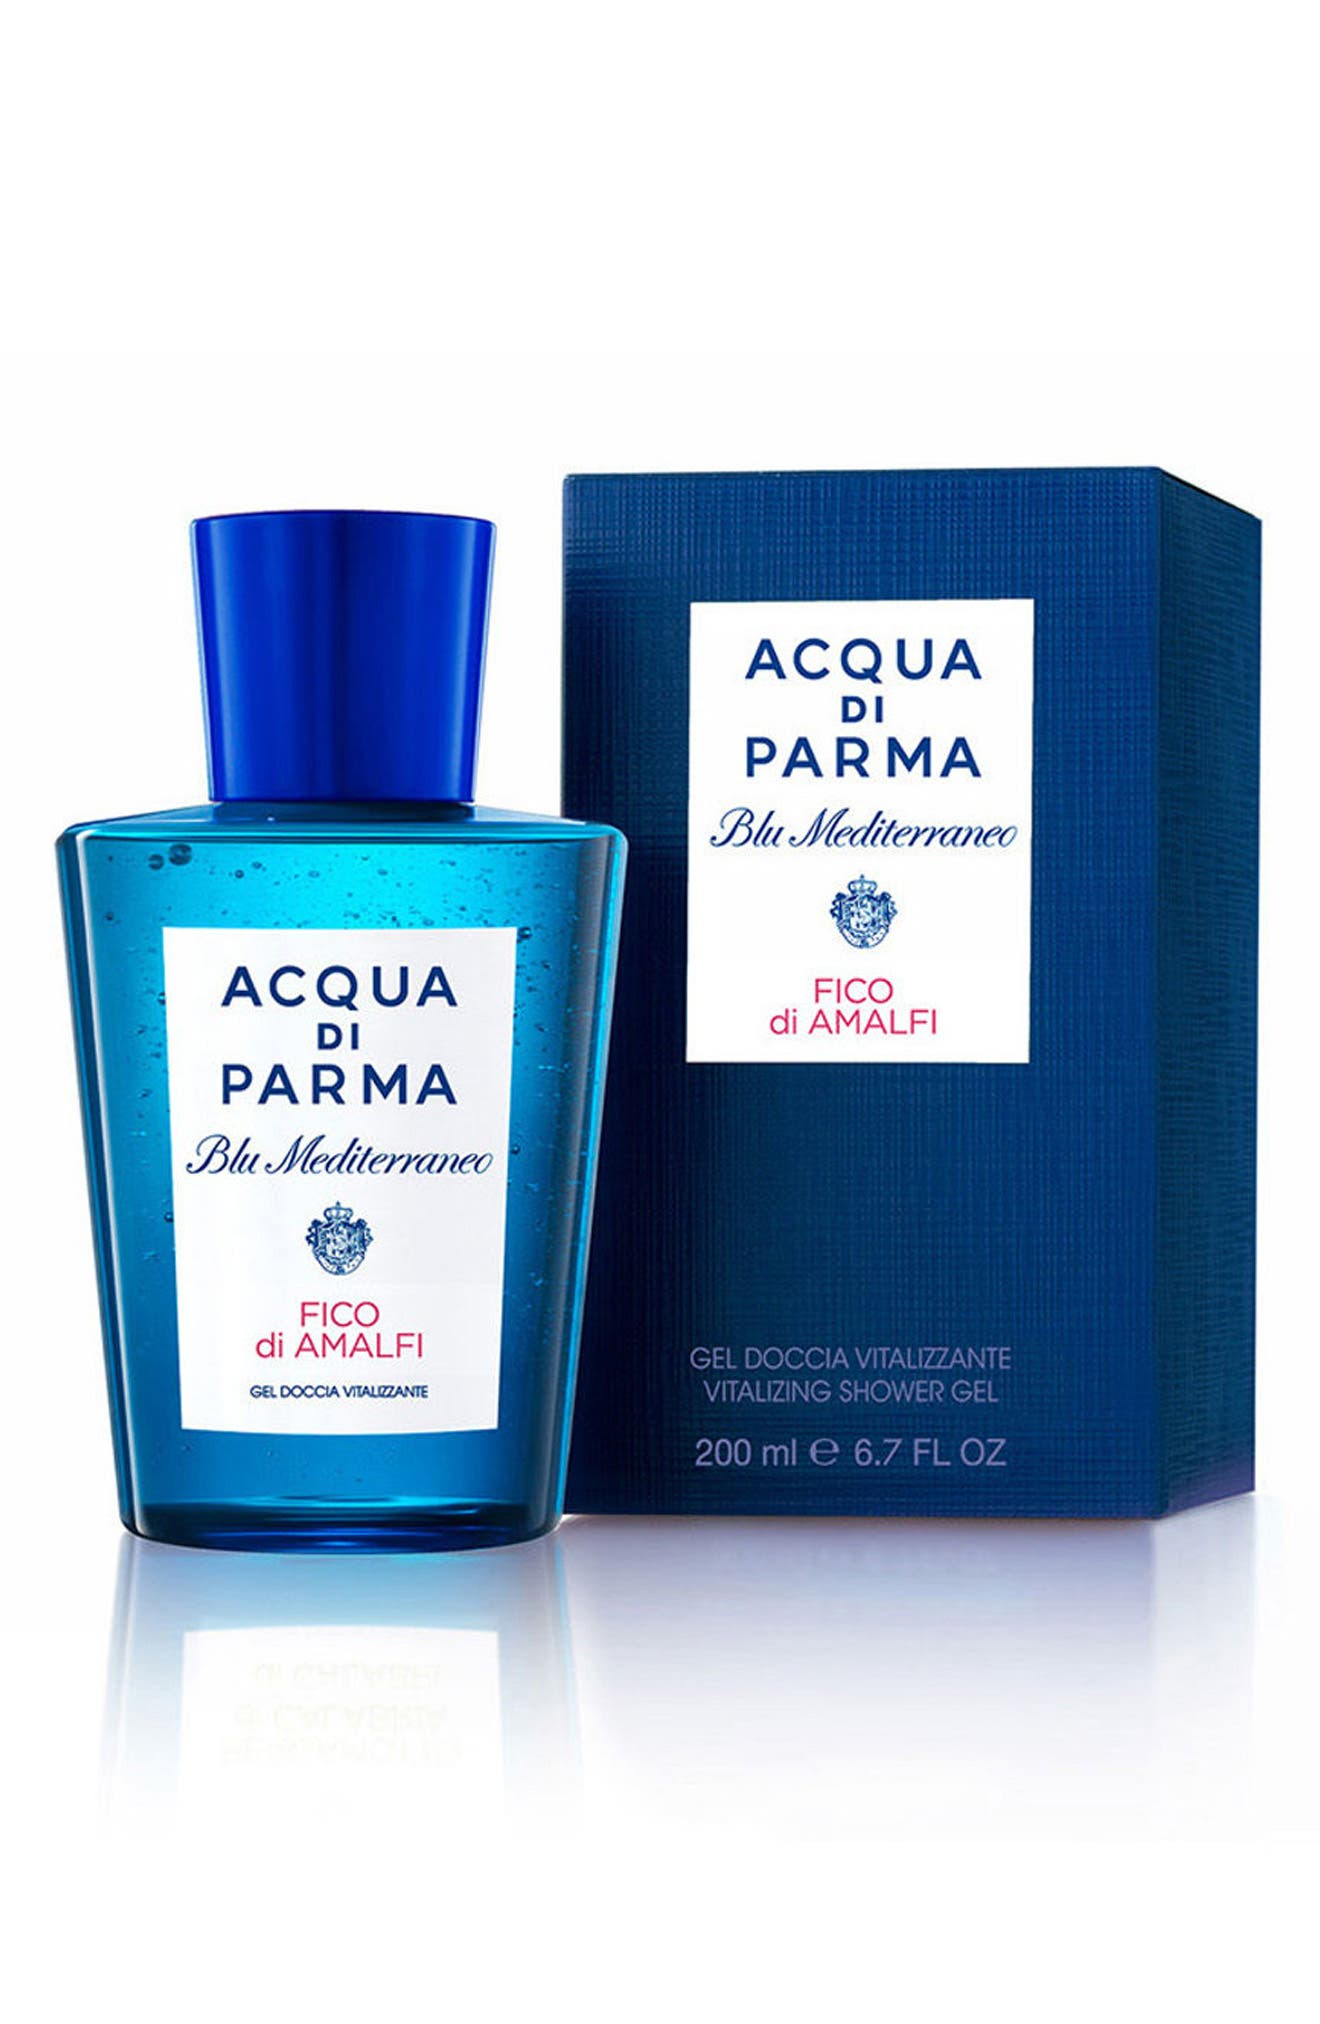 Alternate Image 2  - Acqua di Parma 'Blu Mediterraneo - Fico di Amalfi' Shower Gel